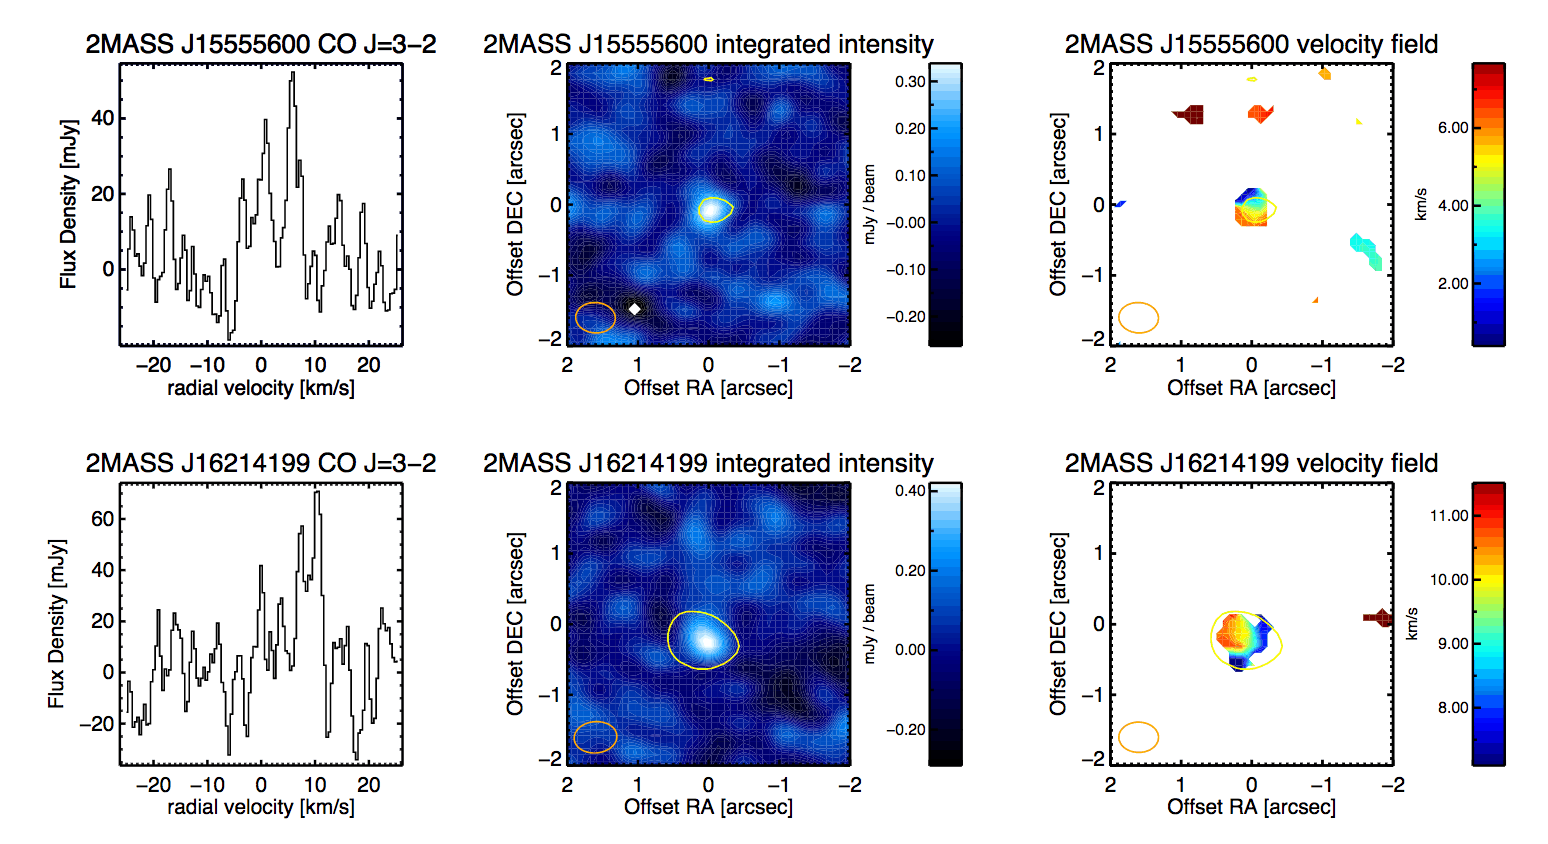 Summary figure for the two disks with detected CO J=3-2 emission. From left to right I show the intergrated cine profile, the integrated intensity (moment 0), and the velocity (moment 1) map.